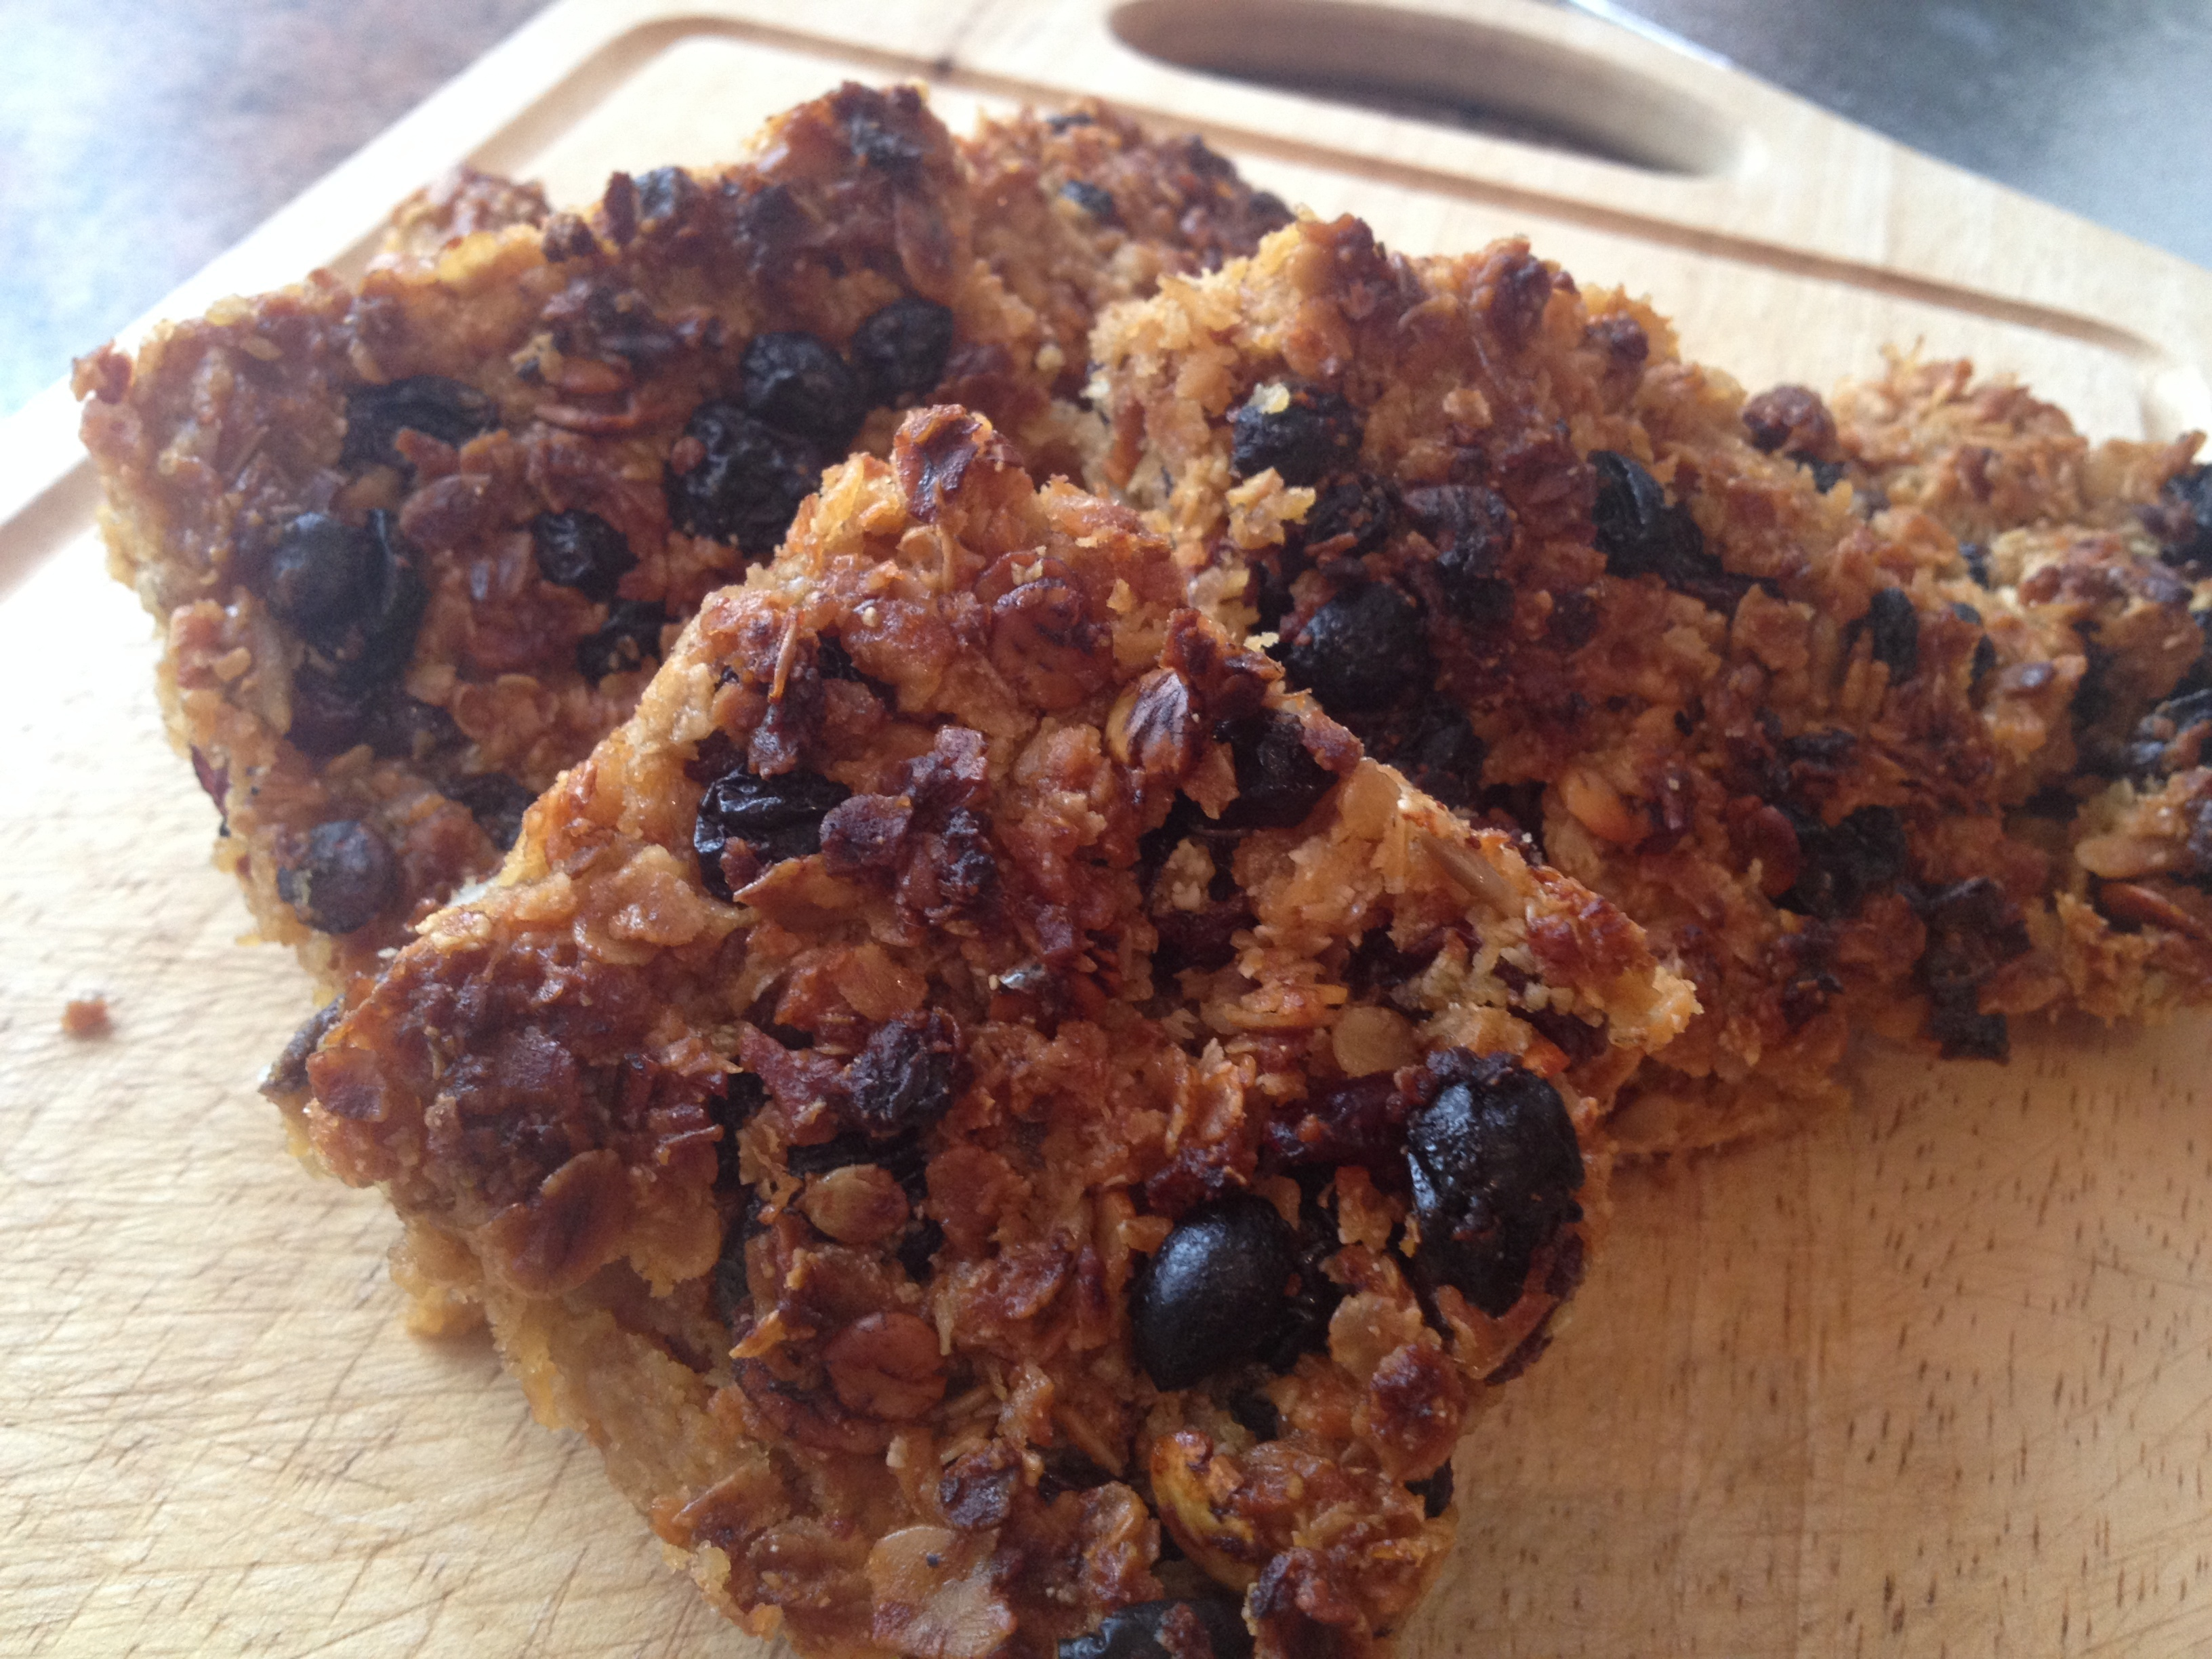 Gluten and dairy free fruit flapjack